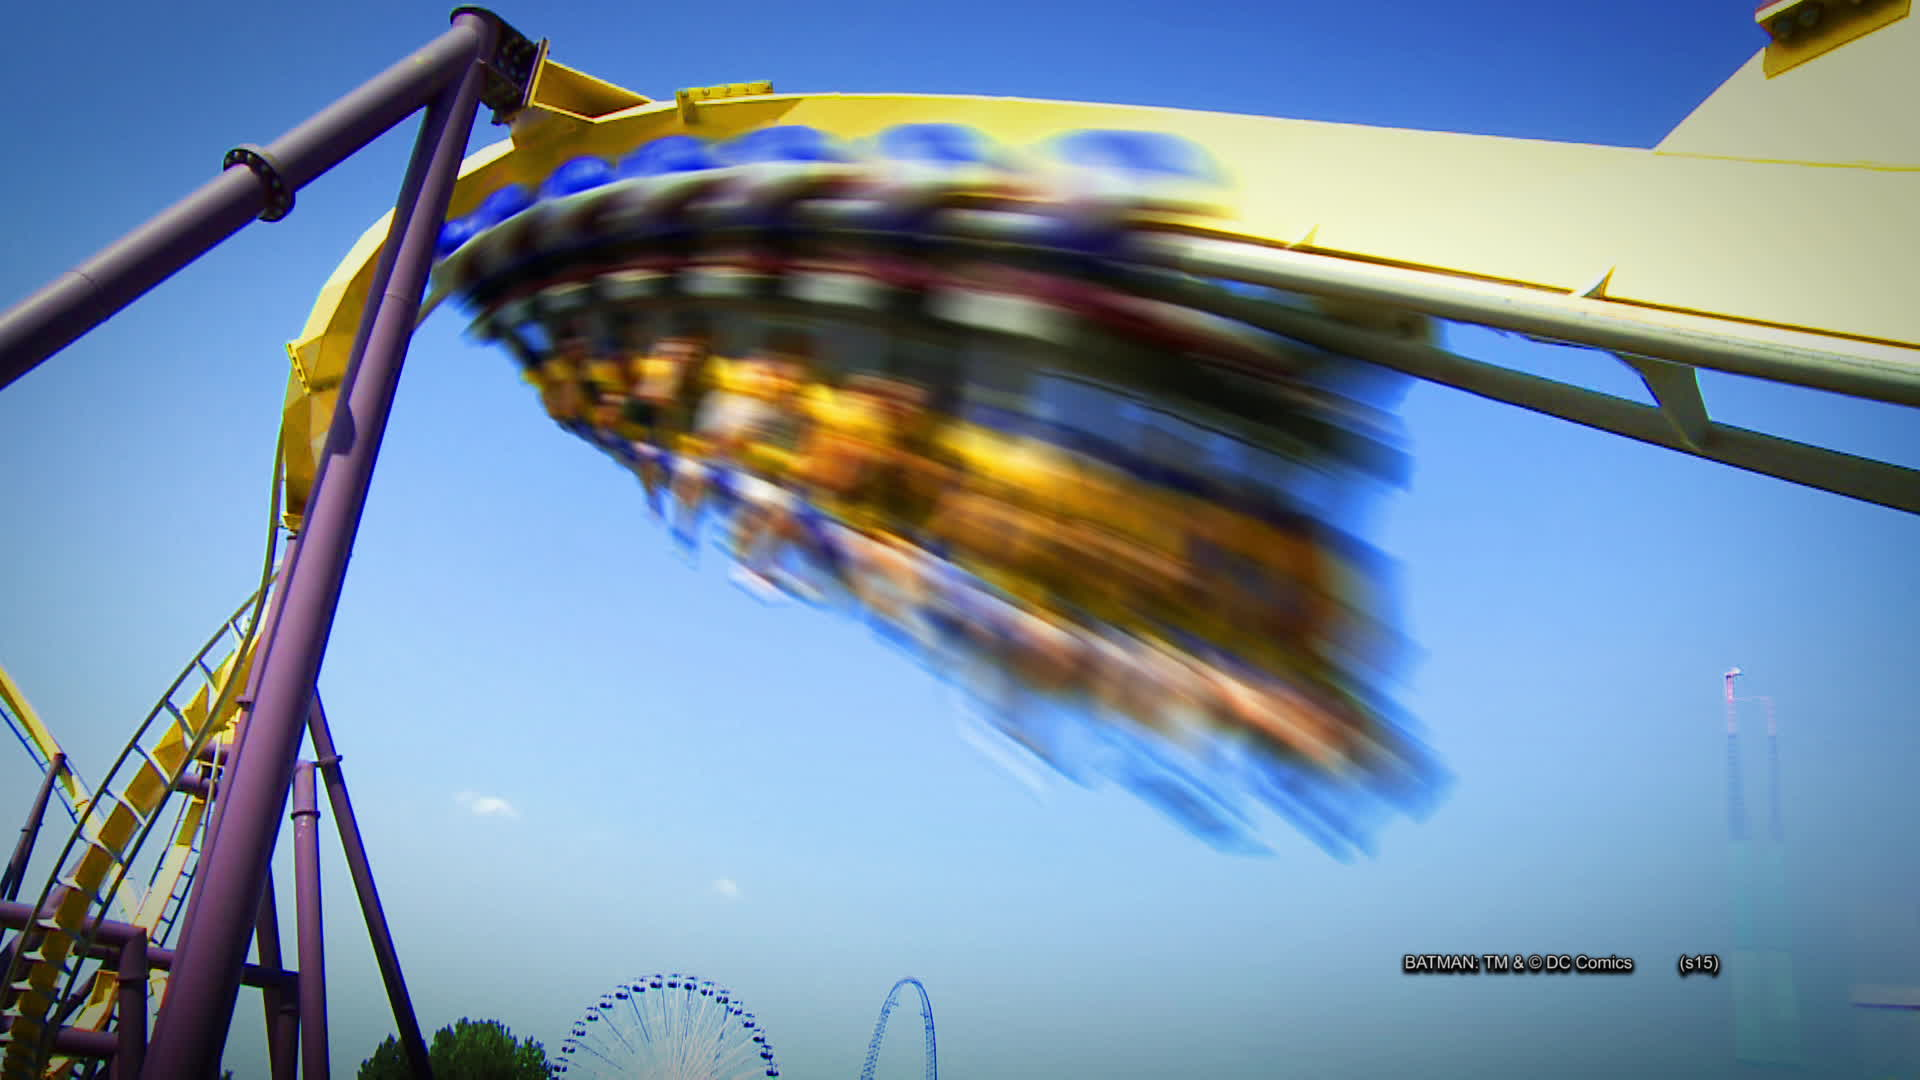 BATMAN™: The Ride Flips Backwards for a Limited Time This Summer at Six Flags Great Adventure.